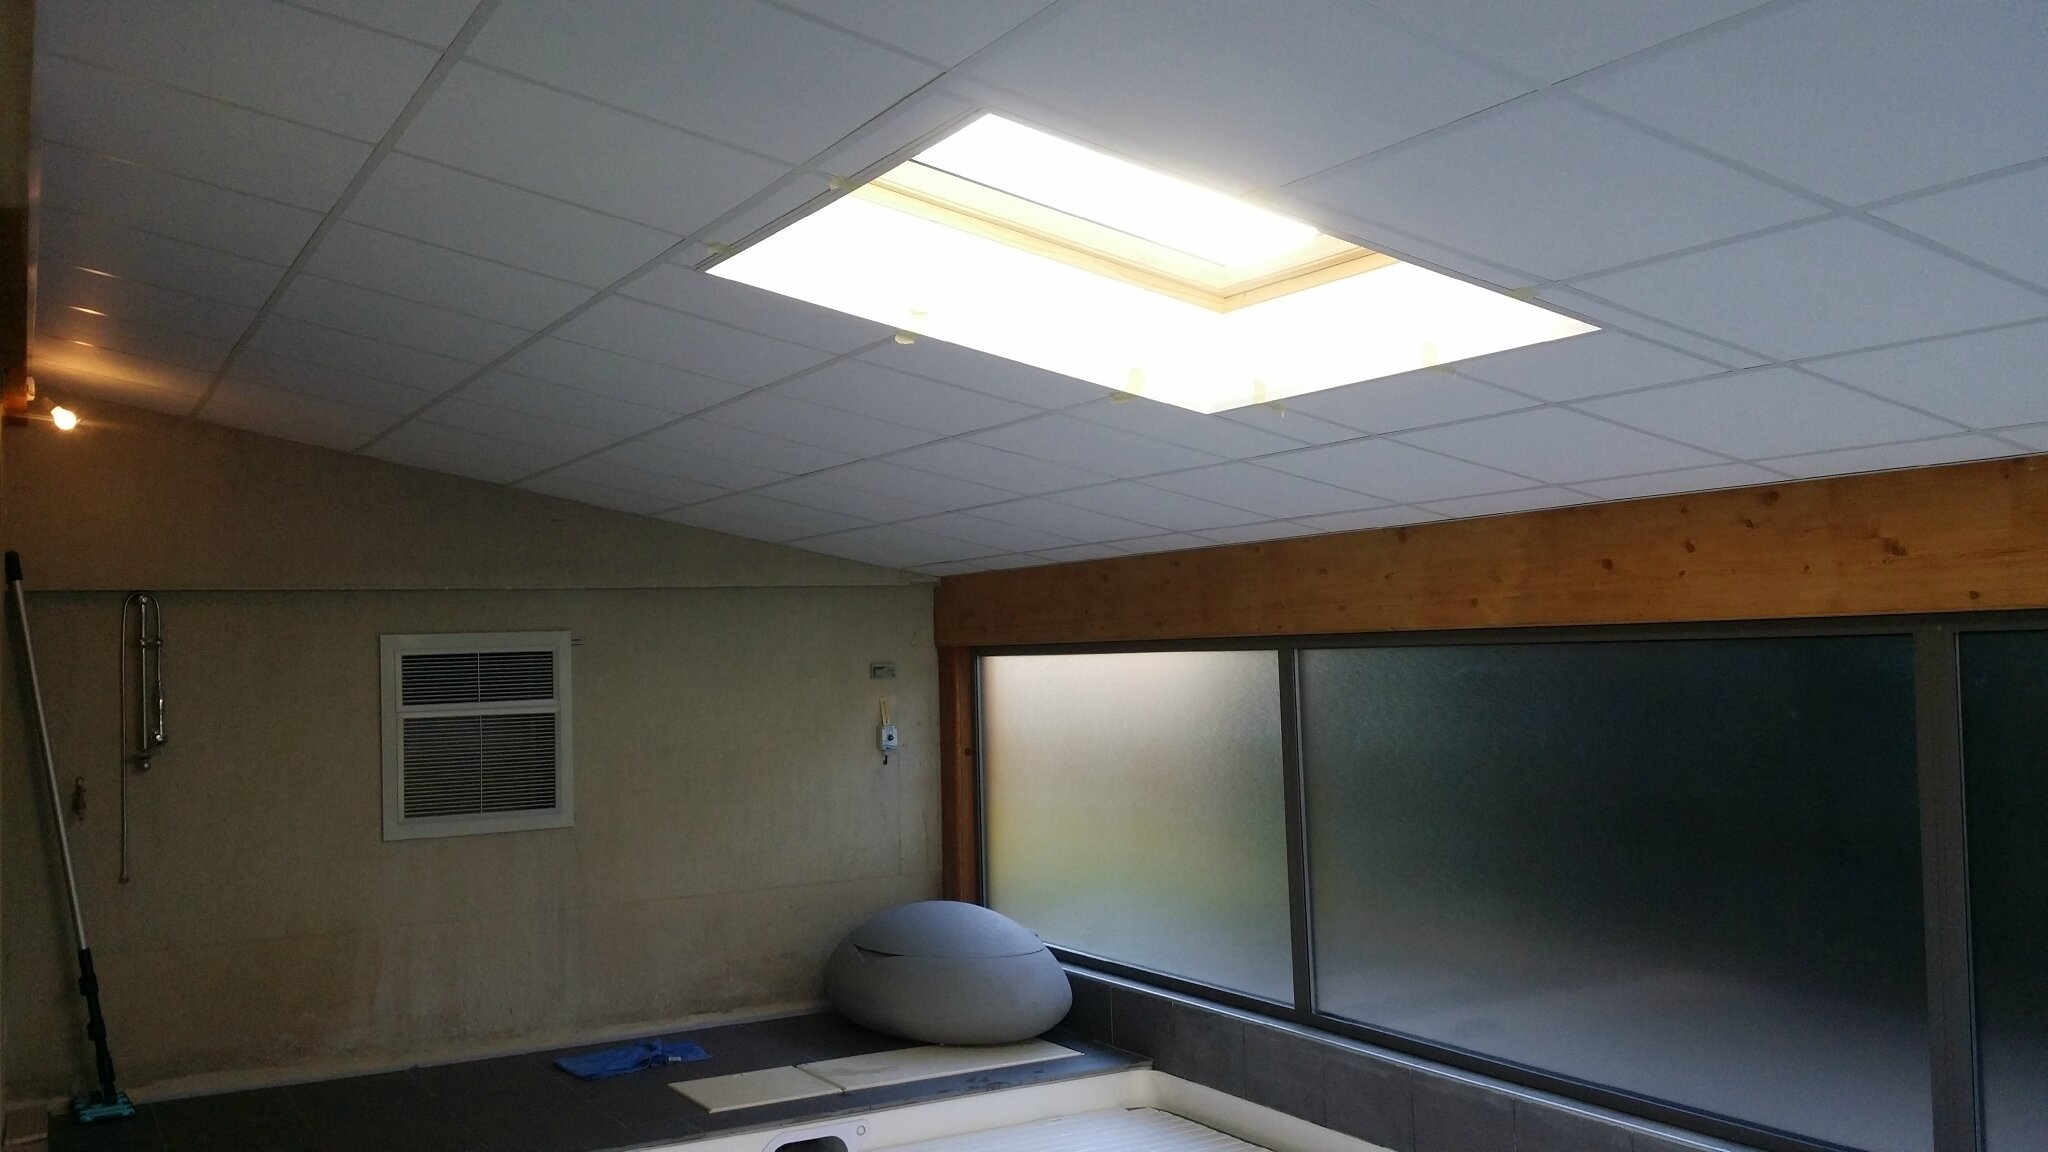 Cr ation d 39 un plafond isol sp cial humidit sur local for Creation interieur